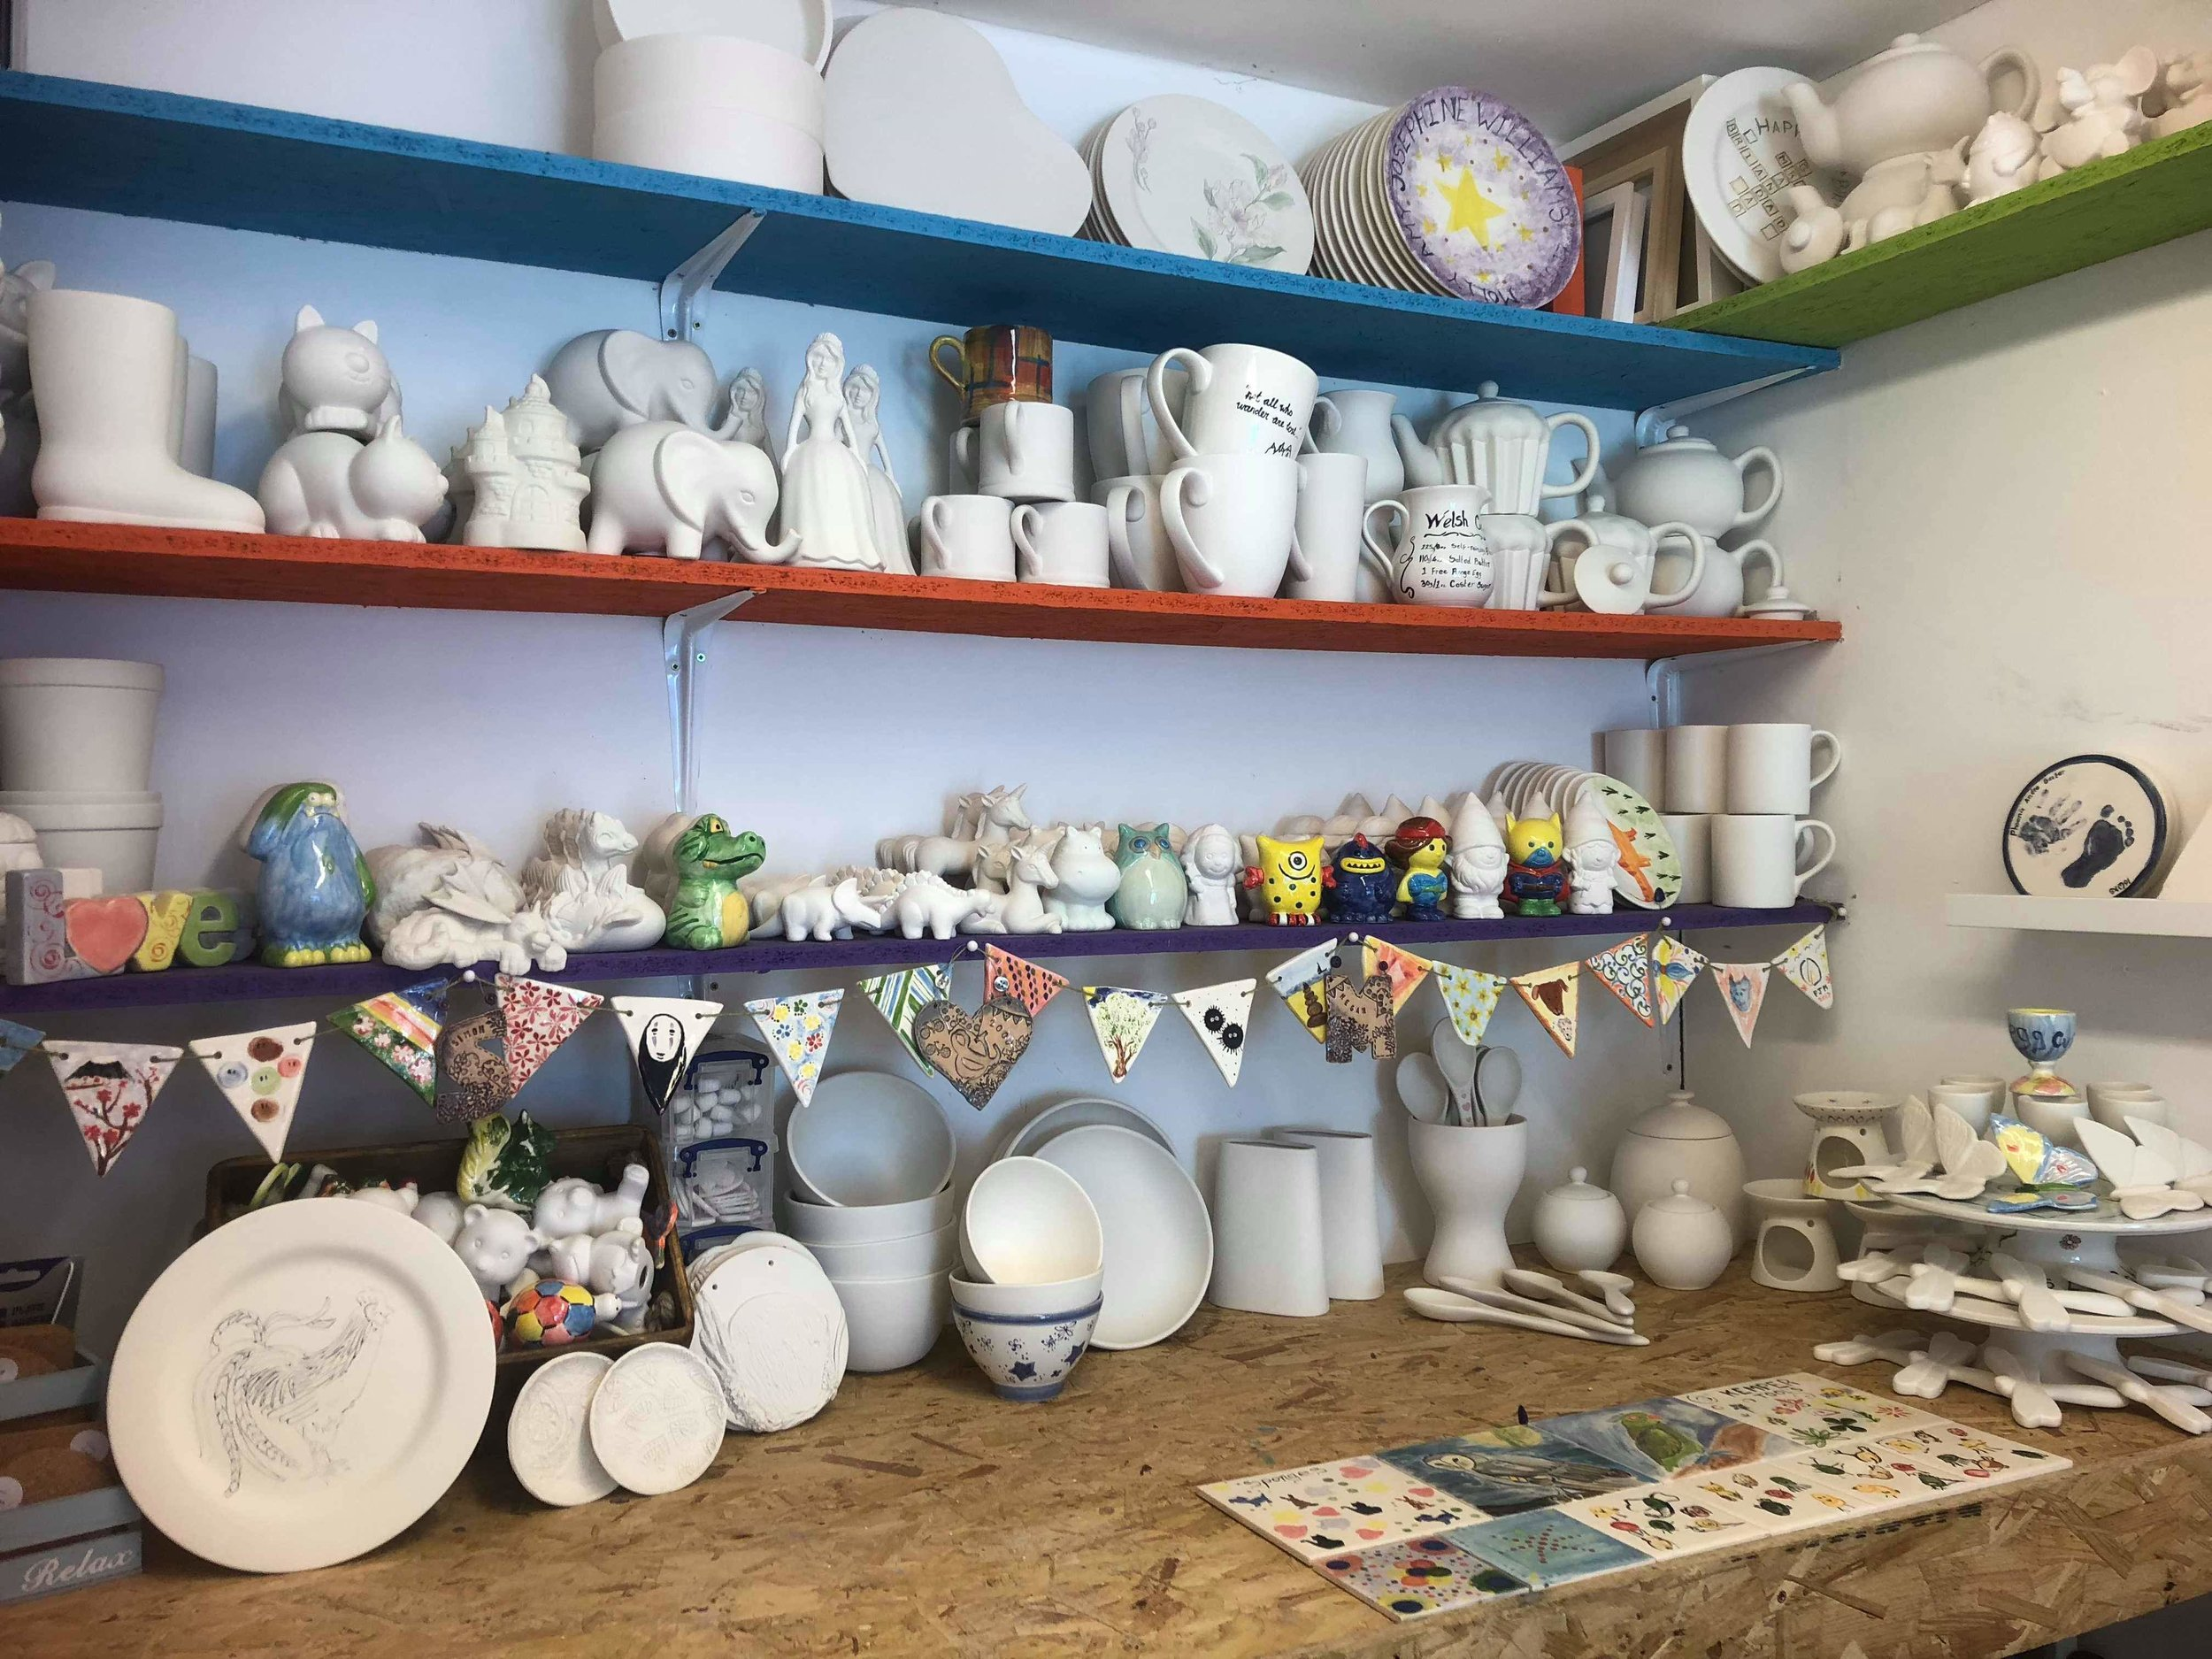 All our parties include a special party plate painted for the birthday girl or boy and signed by all of the party goers. This is a perfect memento to mark the special occasion. join us in our shipping container pottery studio.  www.peggyspots.co.uk